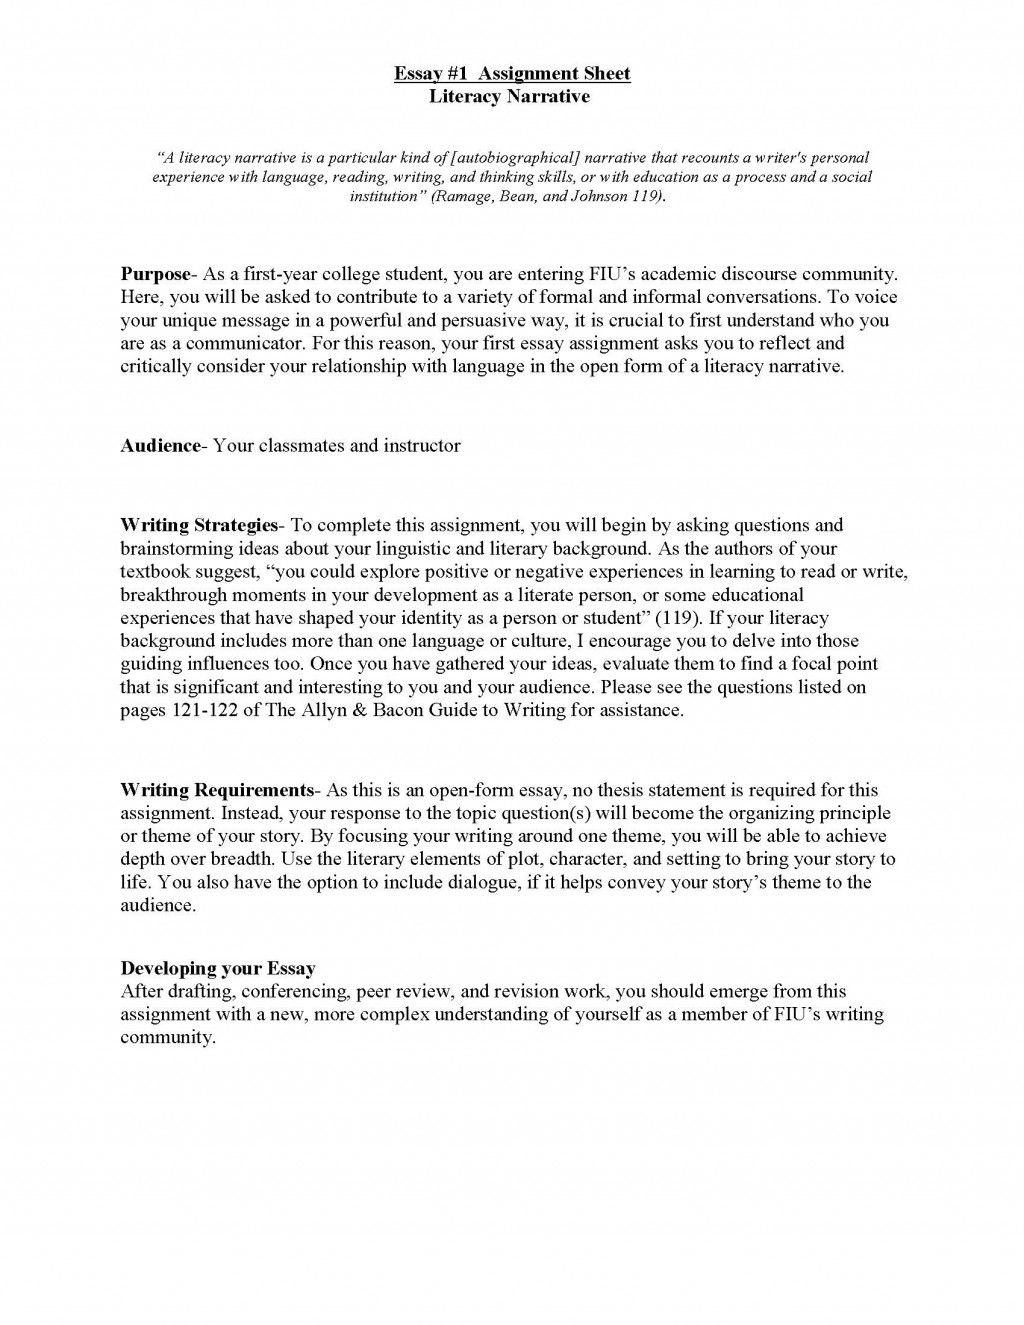 006 Personal Narrative Essays For Colleges Literacy Unit Assignment Spring 2012 Page 1 Phenomenal Essay Examples Large